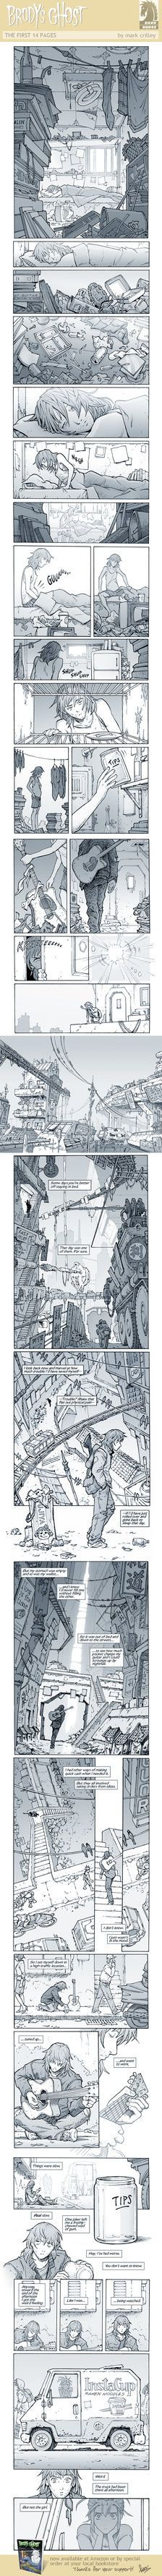 Brody's Ghost 14-Page Preview by markcrilley on deviantART